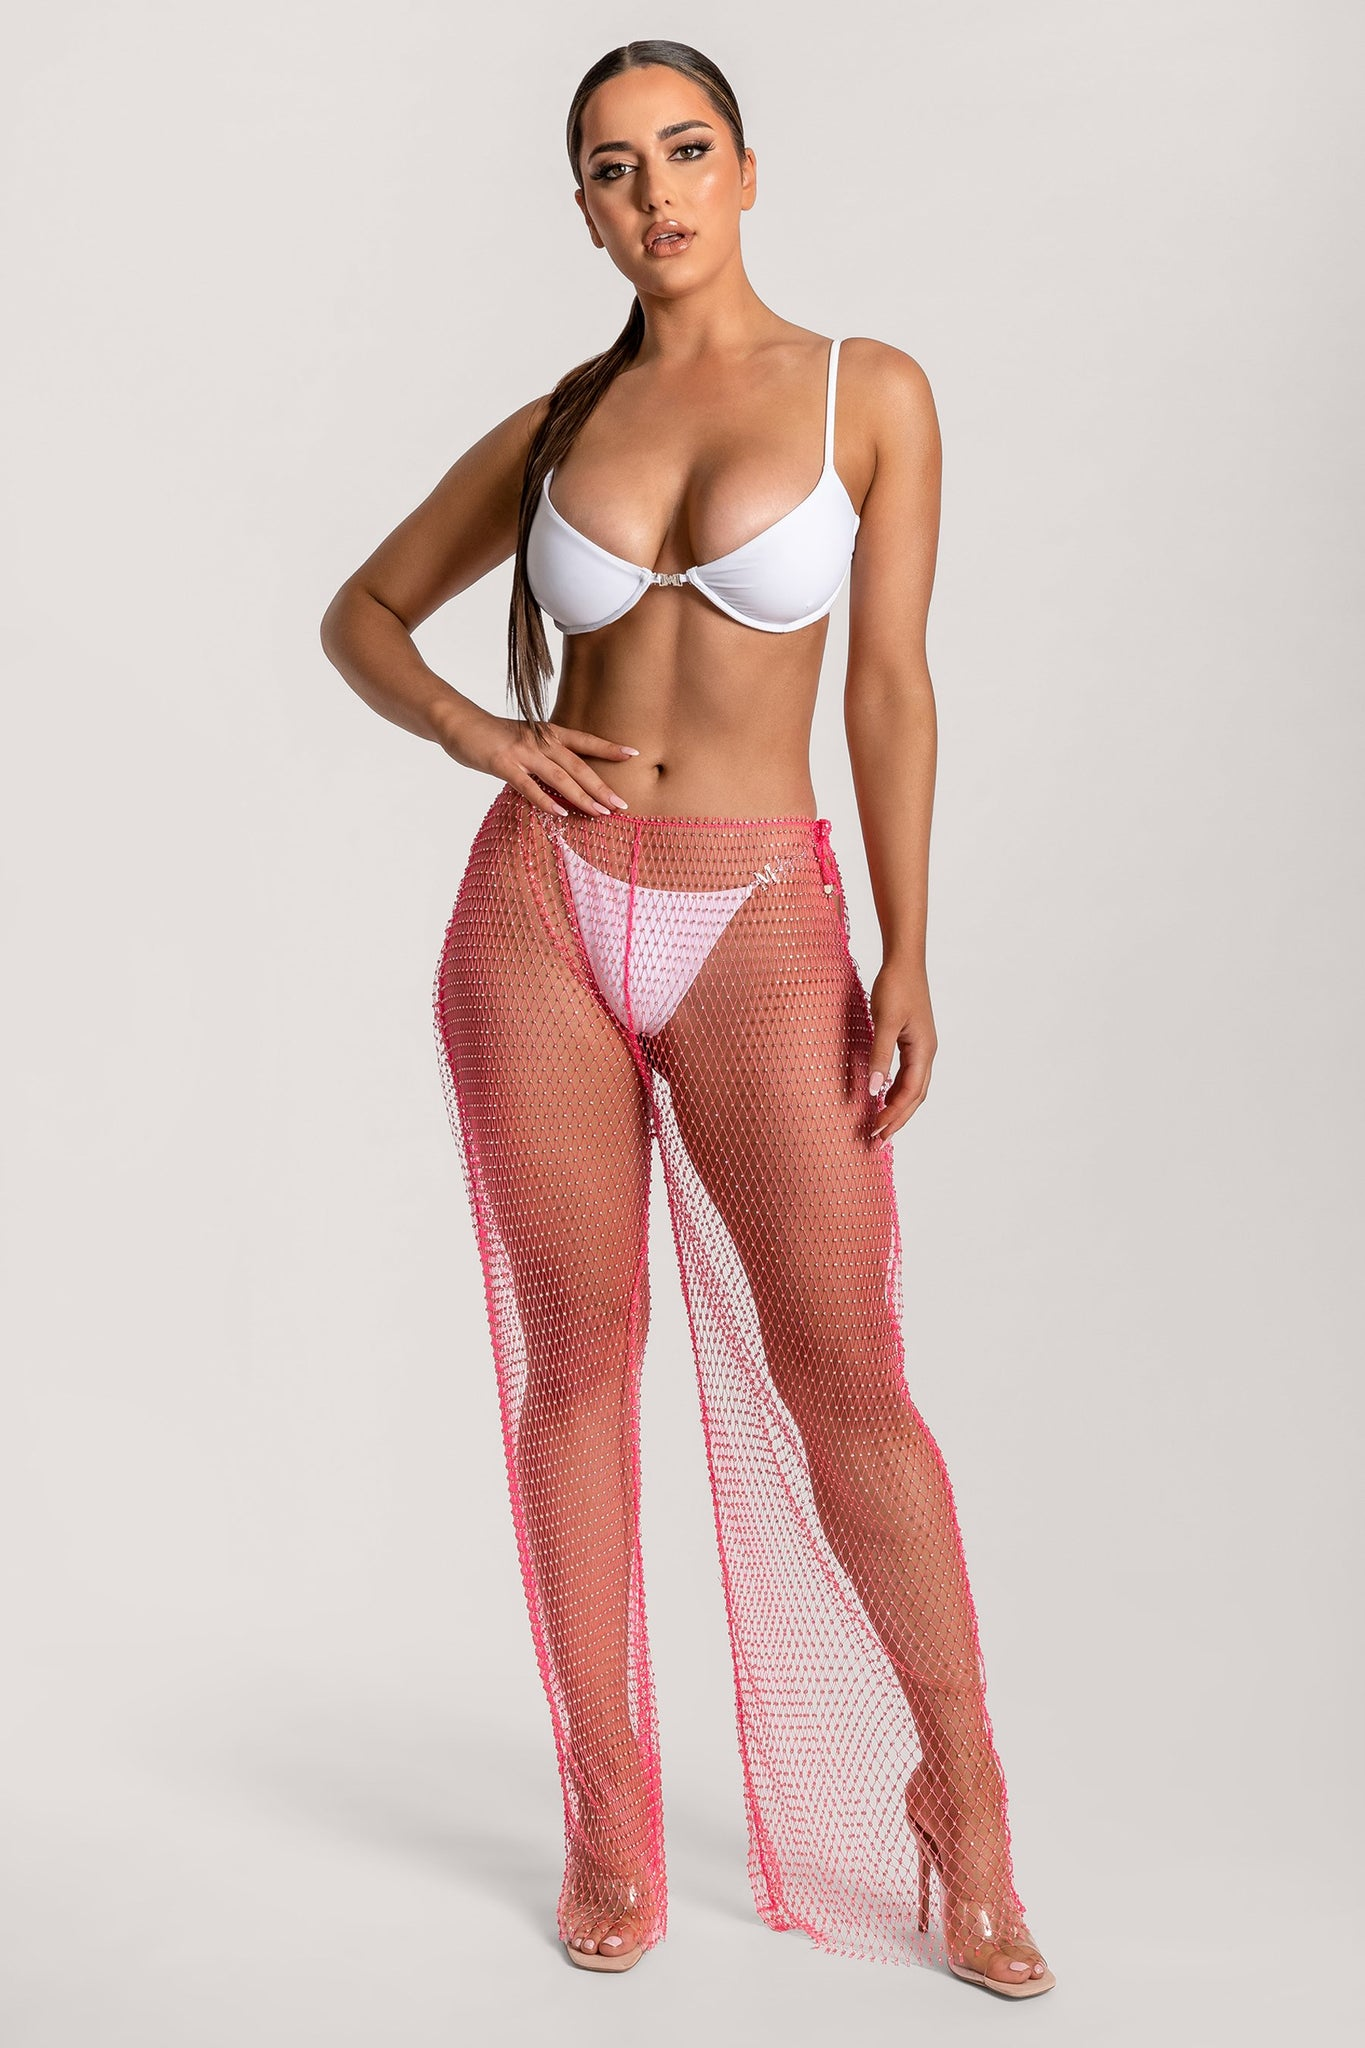 Shimmi Fishnet Diamante Wide Leg Pants - Pink - MESHKI